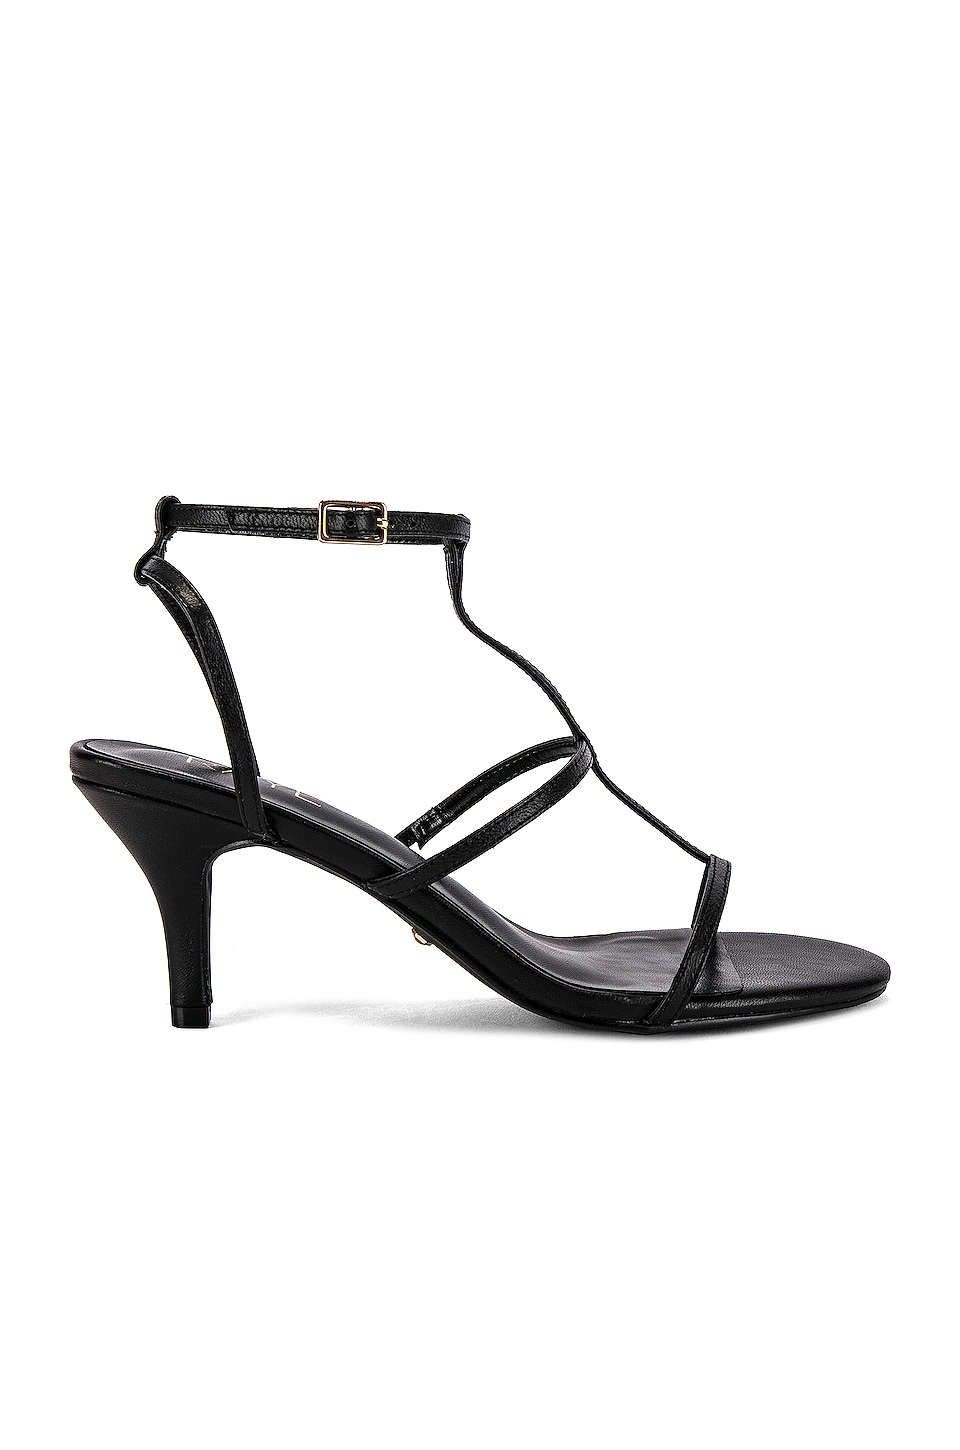 RAYE Nikita Heel in Black